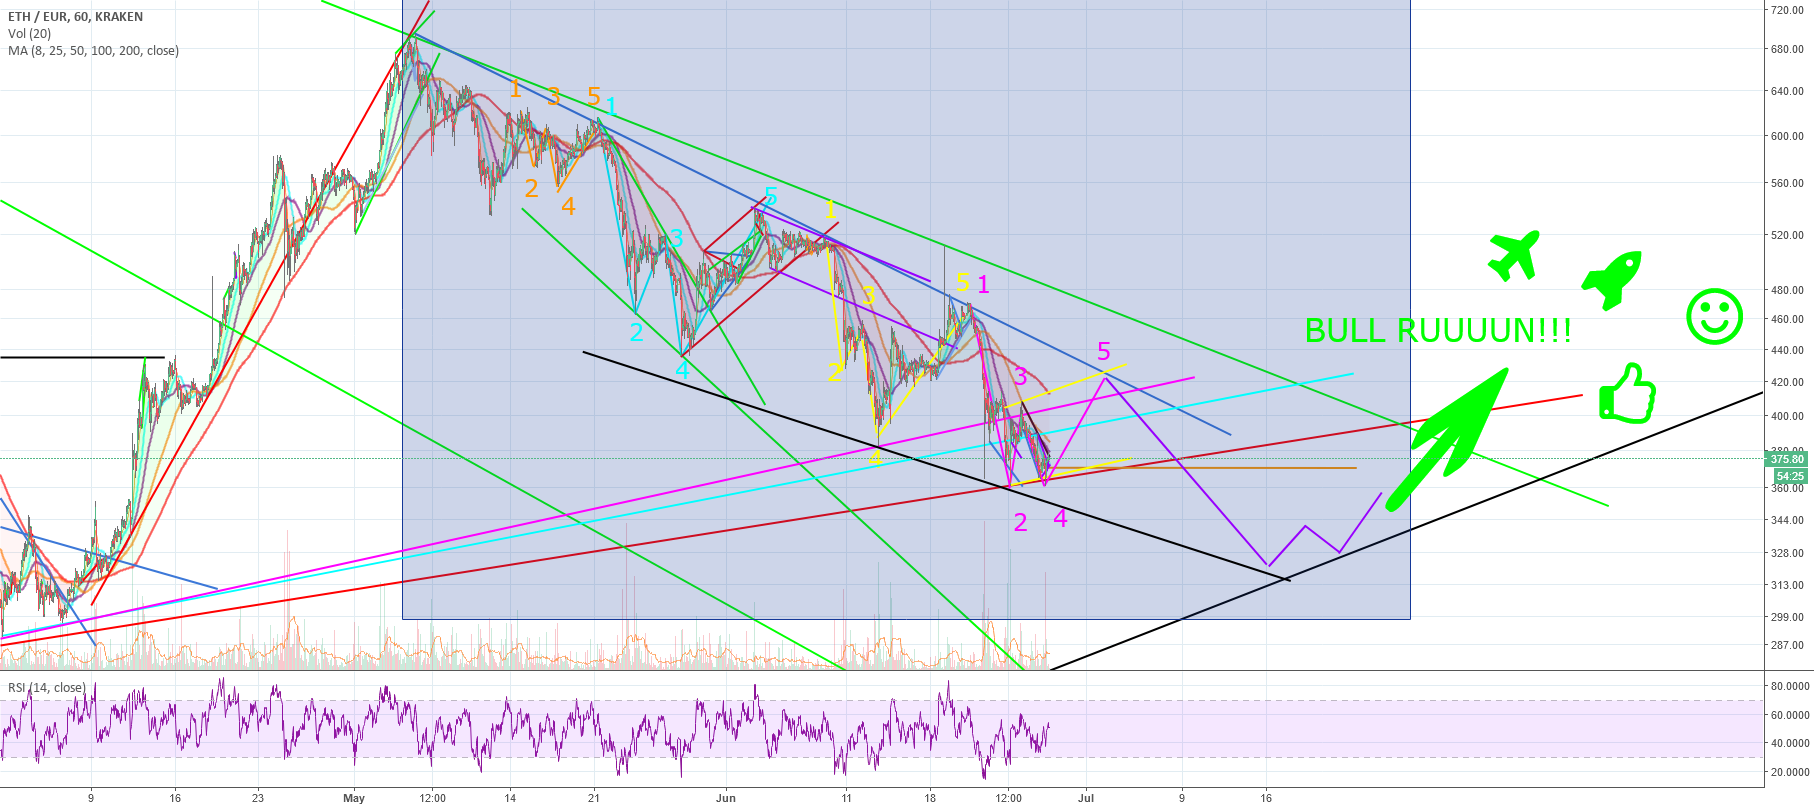 ETH EUR Daily and Hourly pattern - last moves before BULL RUN!!!